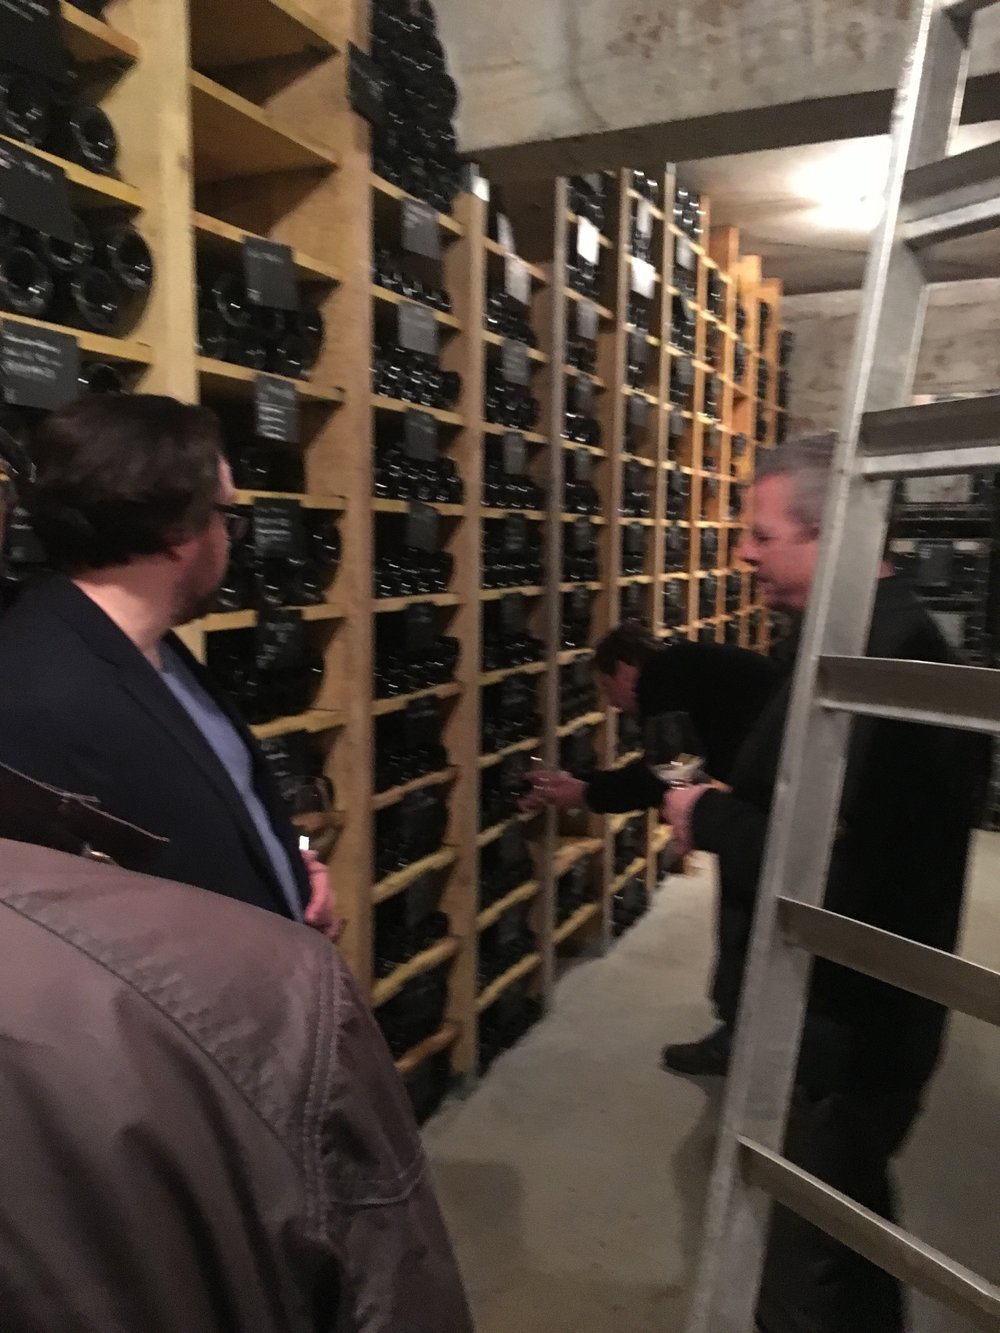 David Duband shops for tasting wine in the cellar